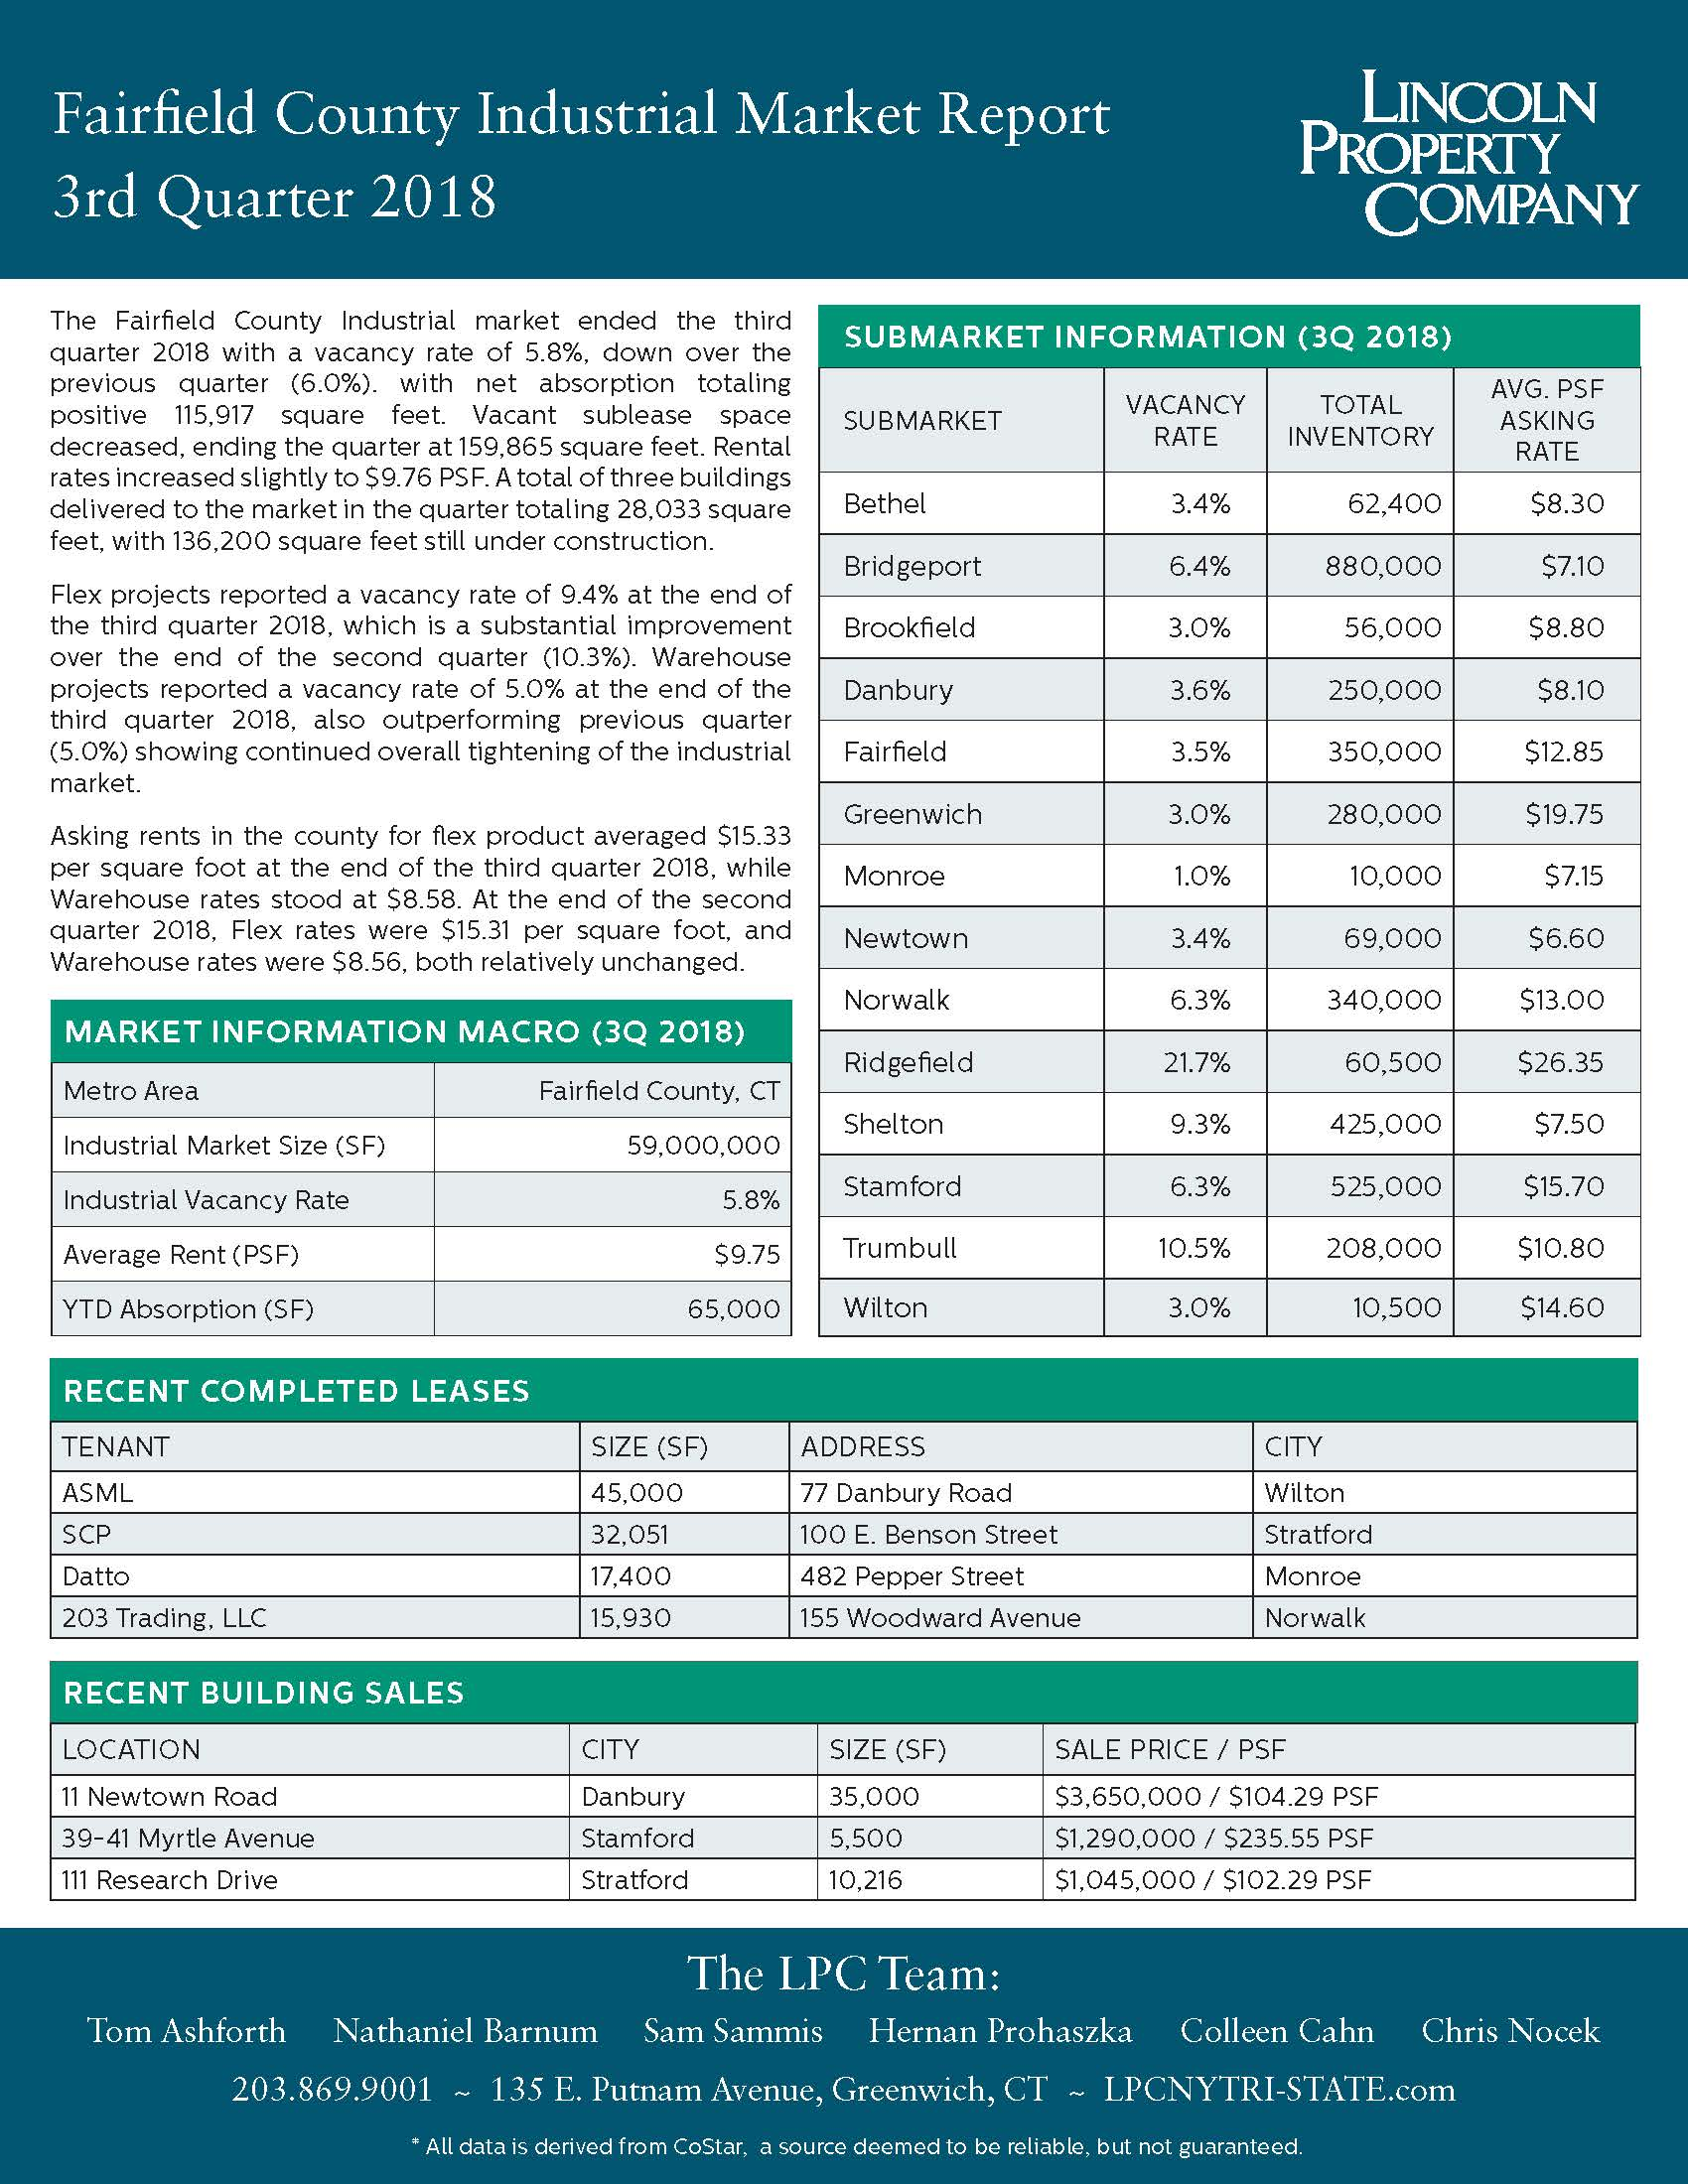 Fairfield County IND Market Report-2018-3Q